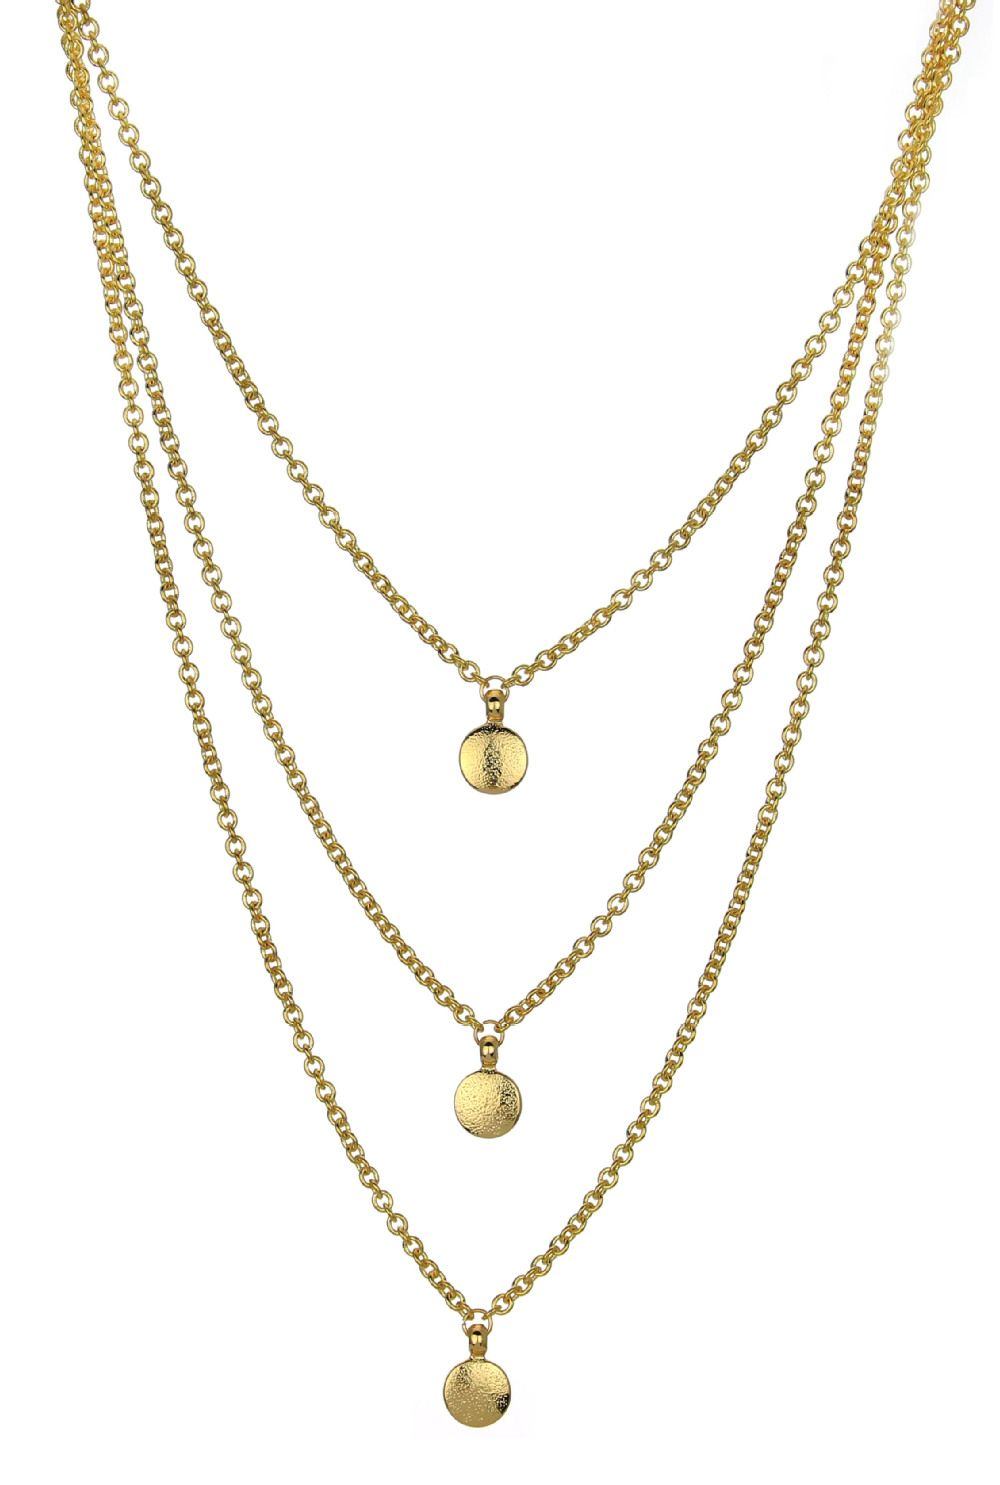 Gorgeous Gold Tone 3 Strands Disc Layered Necklace Free Shipping ...